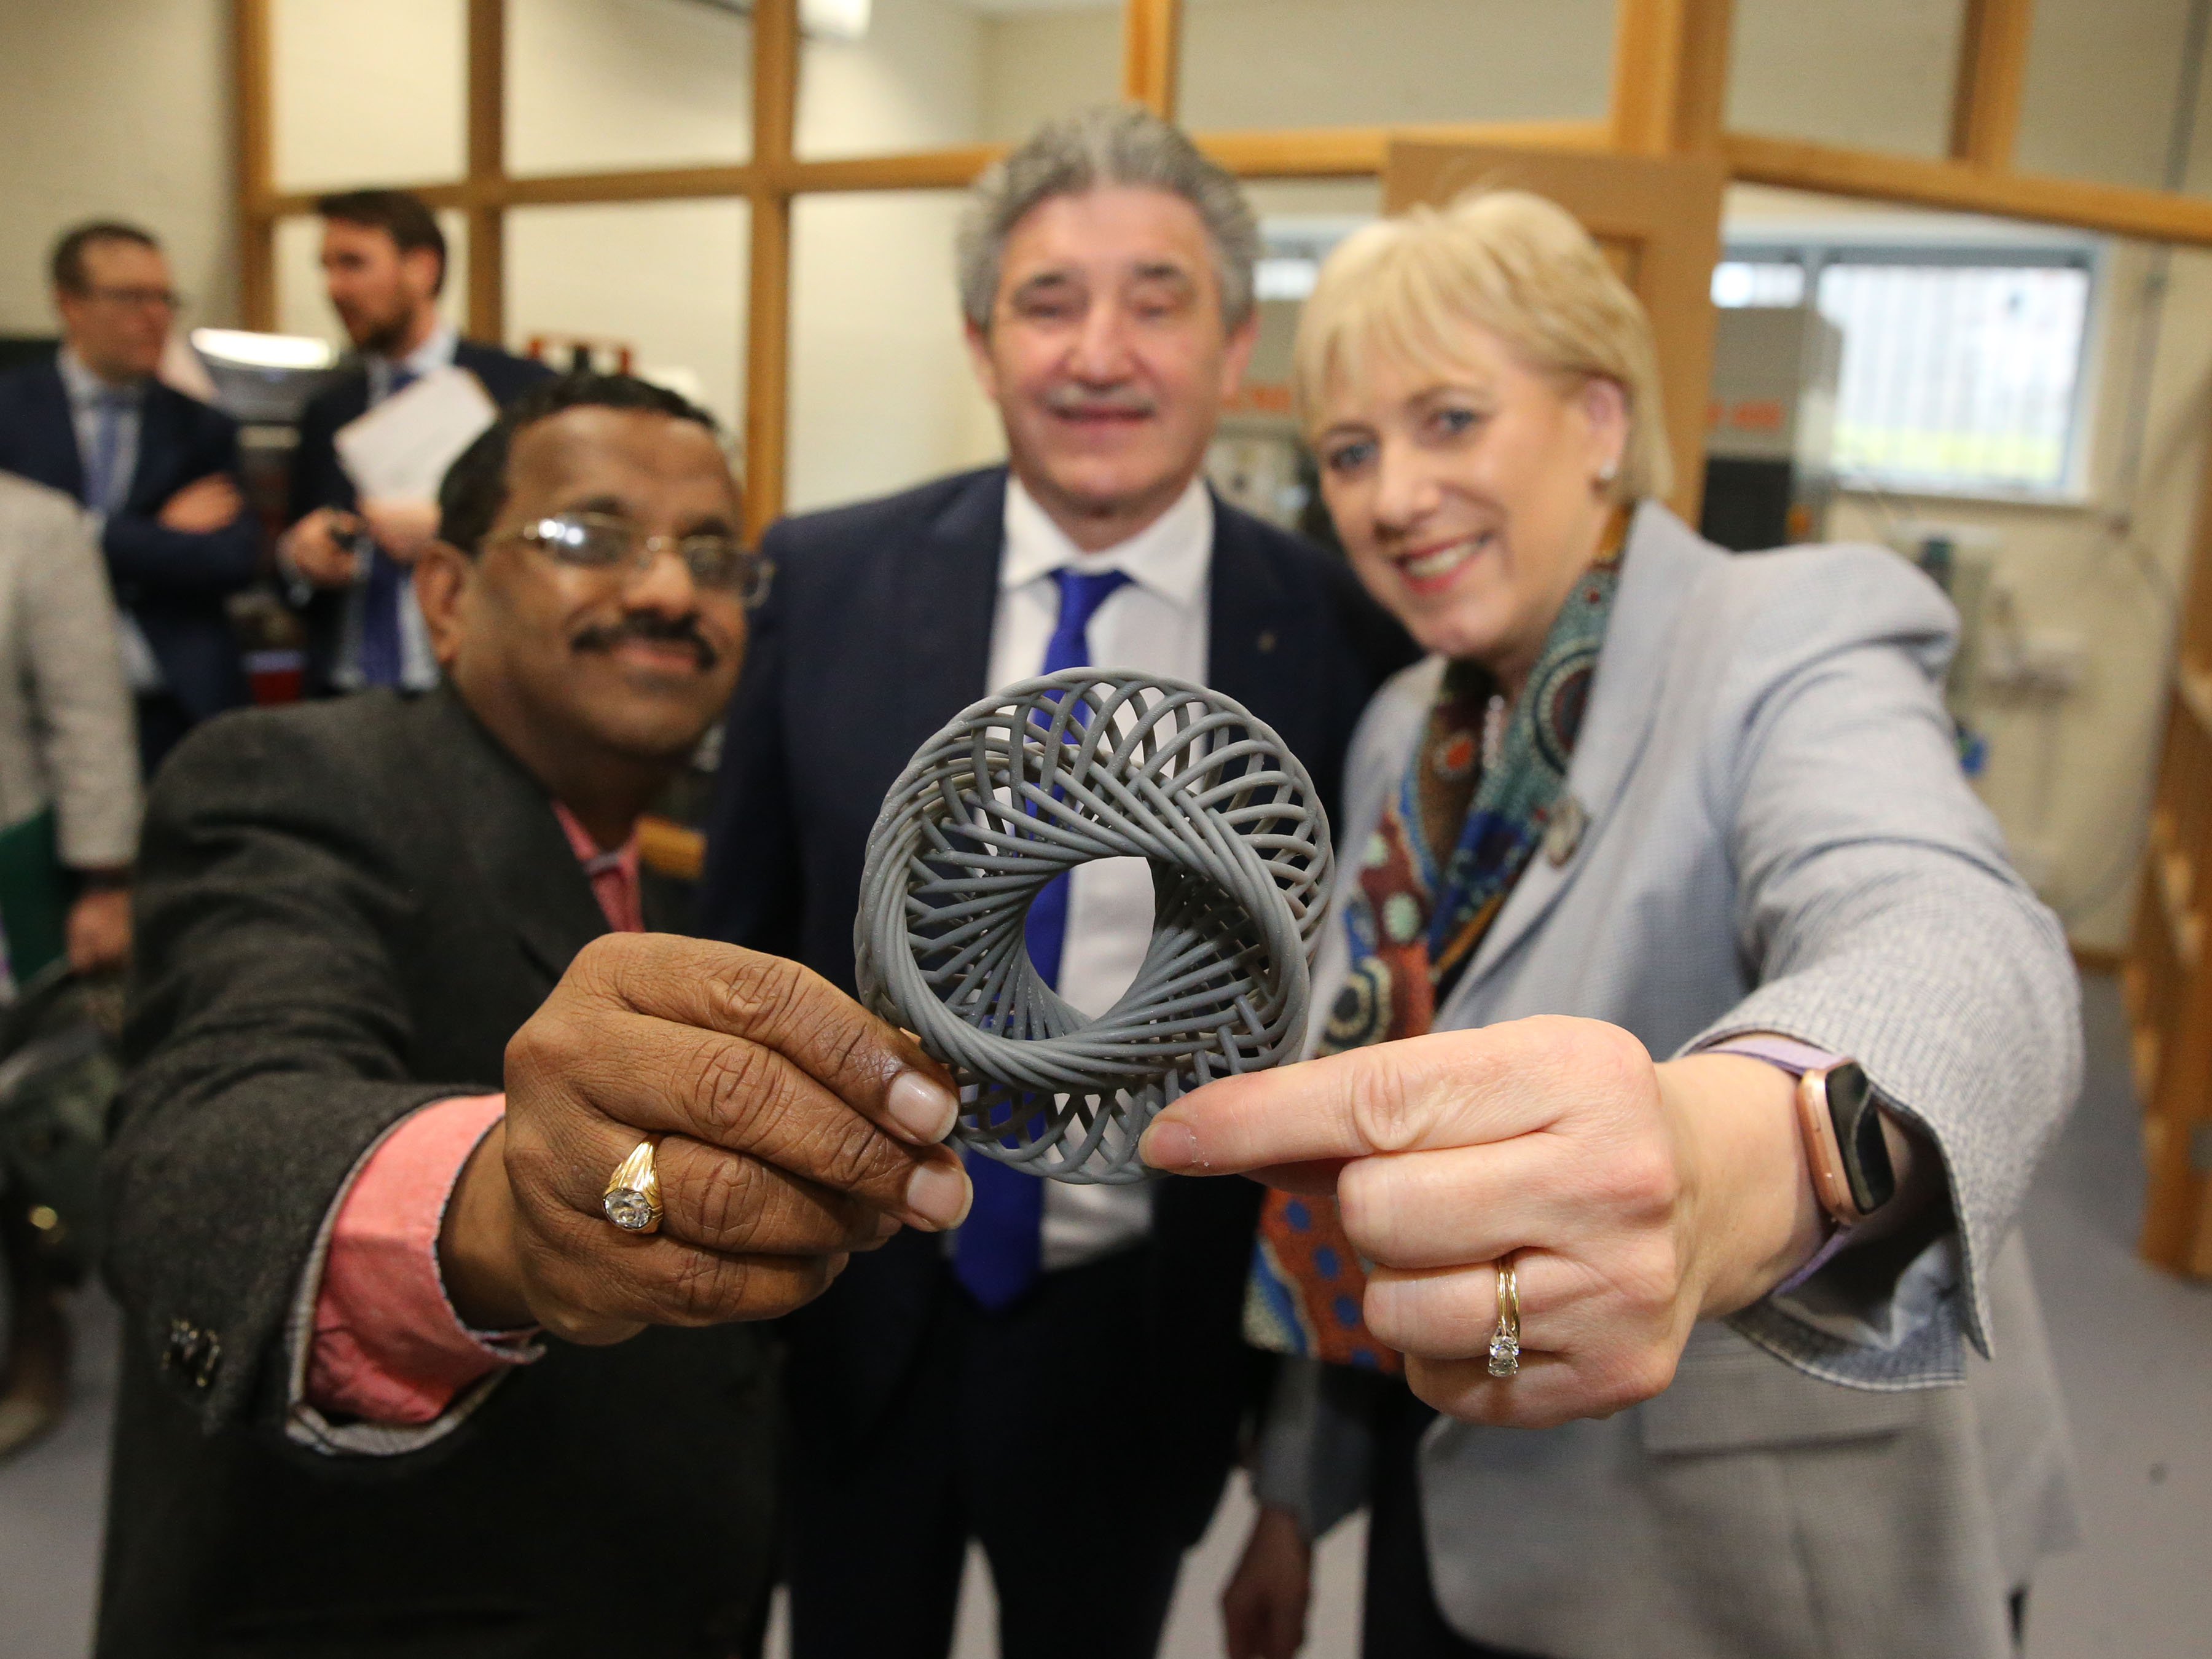 Photo caption: Pictured at the launch of 3DWIT are from left Dr. Ramesh Raghavendra, SEAM Centre Director;  Minister John Halligan T.D., Minister of State for Training, Skills & Innovation; Minister Heather Humphreys, T.D., Minister for Business, Enterprise & Innovation. Photo: Patrick Browne